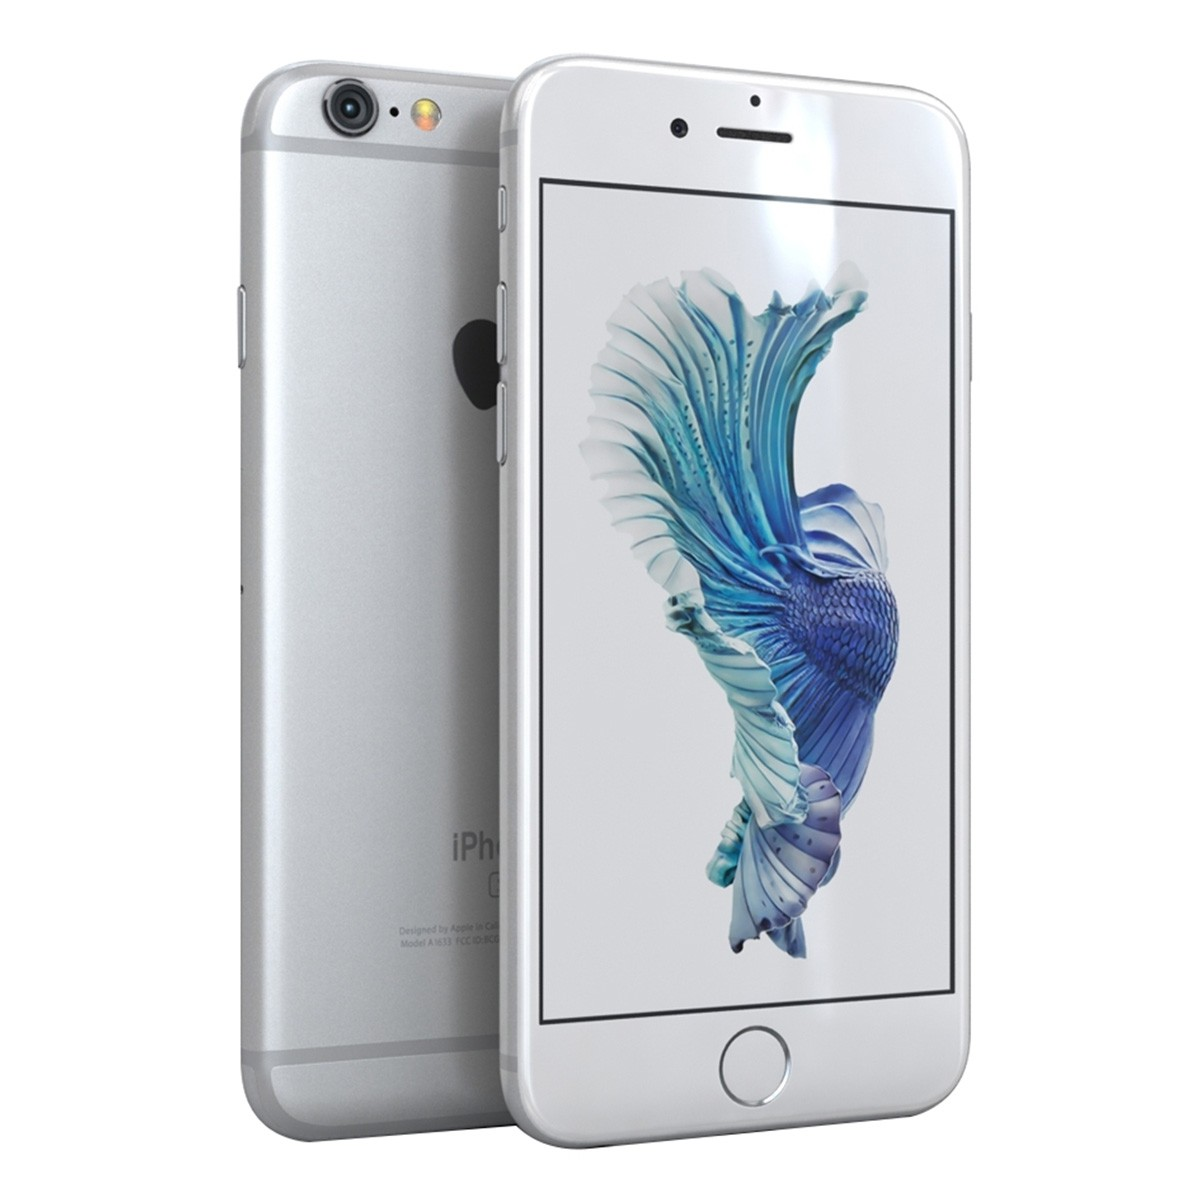 Smartphone Apple iPhone 6 64GB Tela 4.7' Cam 8MP (Outlet)